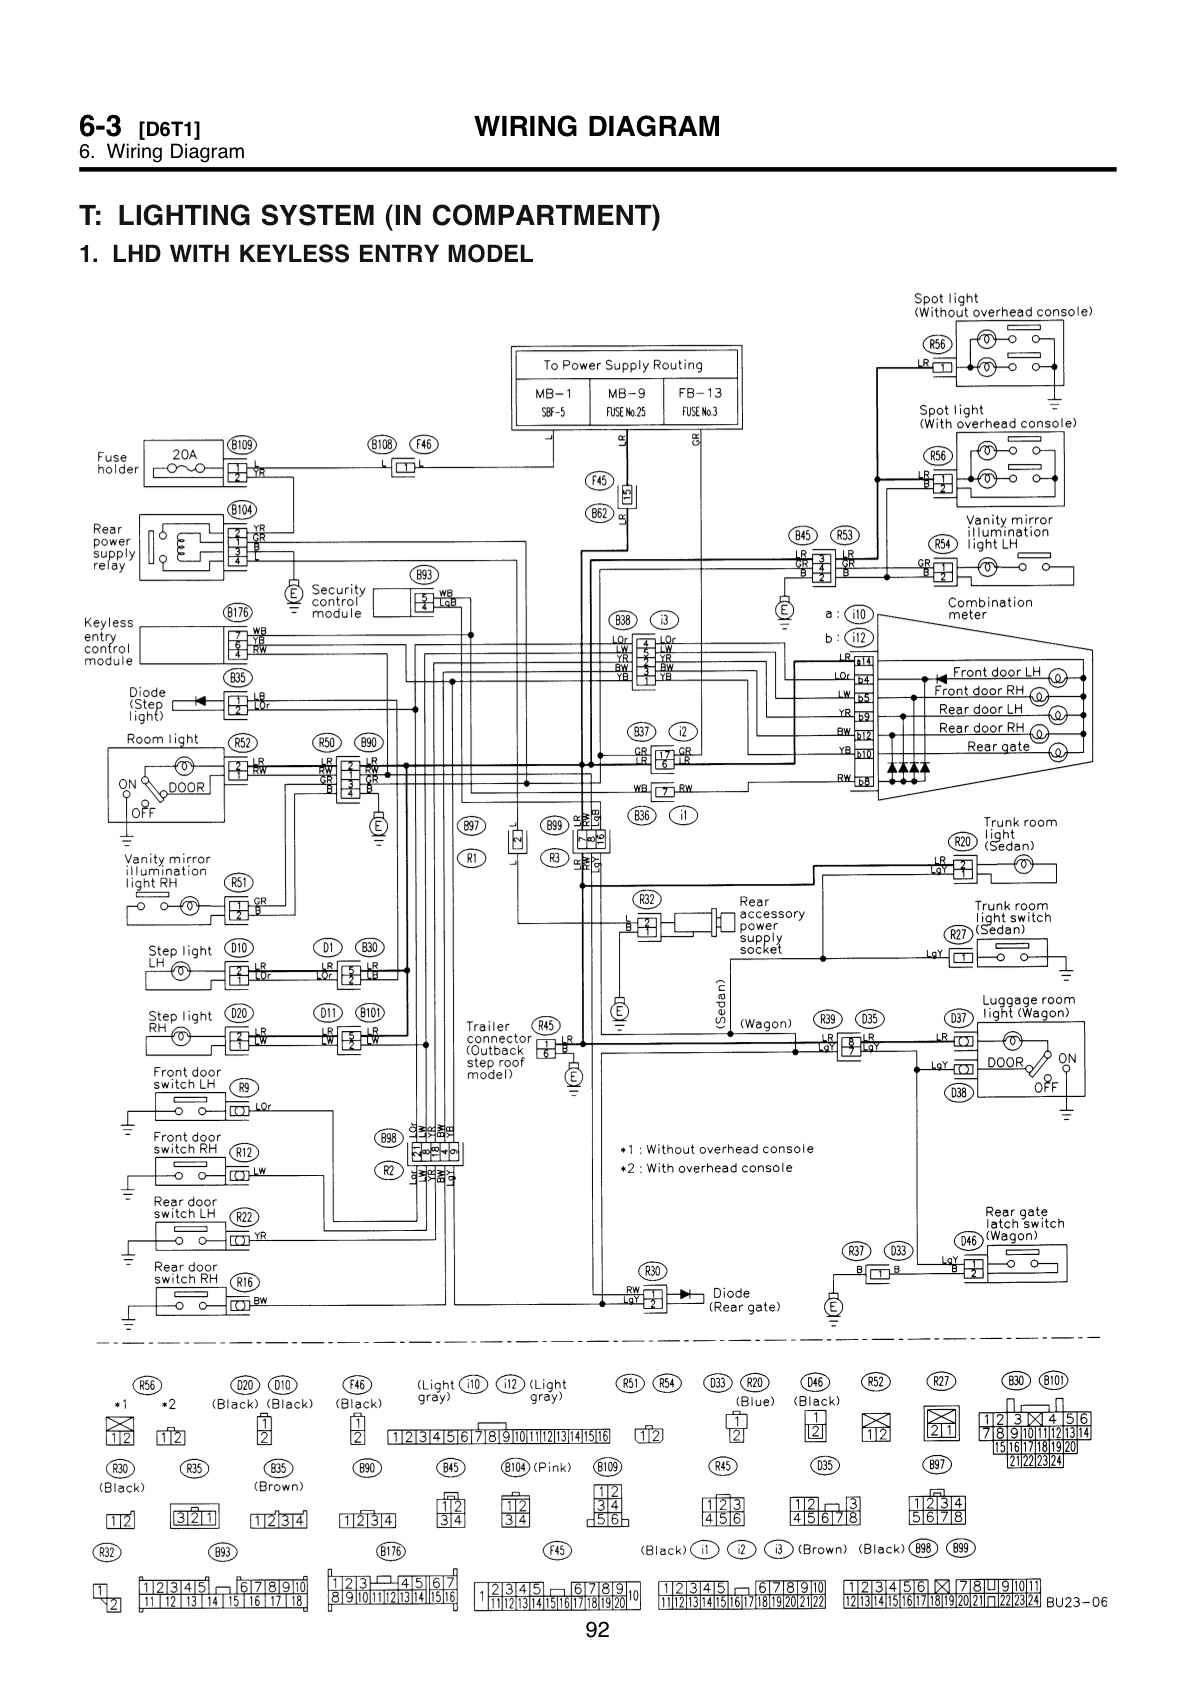 1999 Subaru Legacy Stereo Wiring Diagram Schematics Wiring Diagrams Source  · 1999 Subaru Impreza Wiring Diagram Auto Electrical